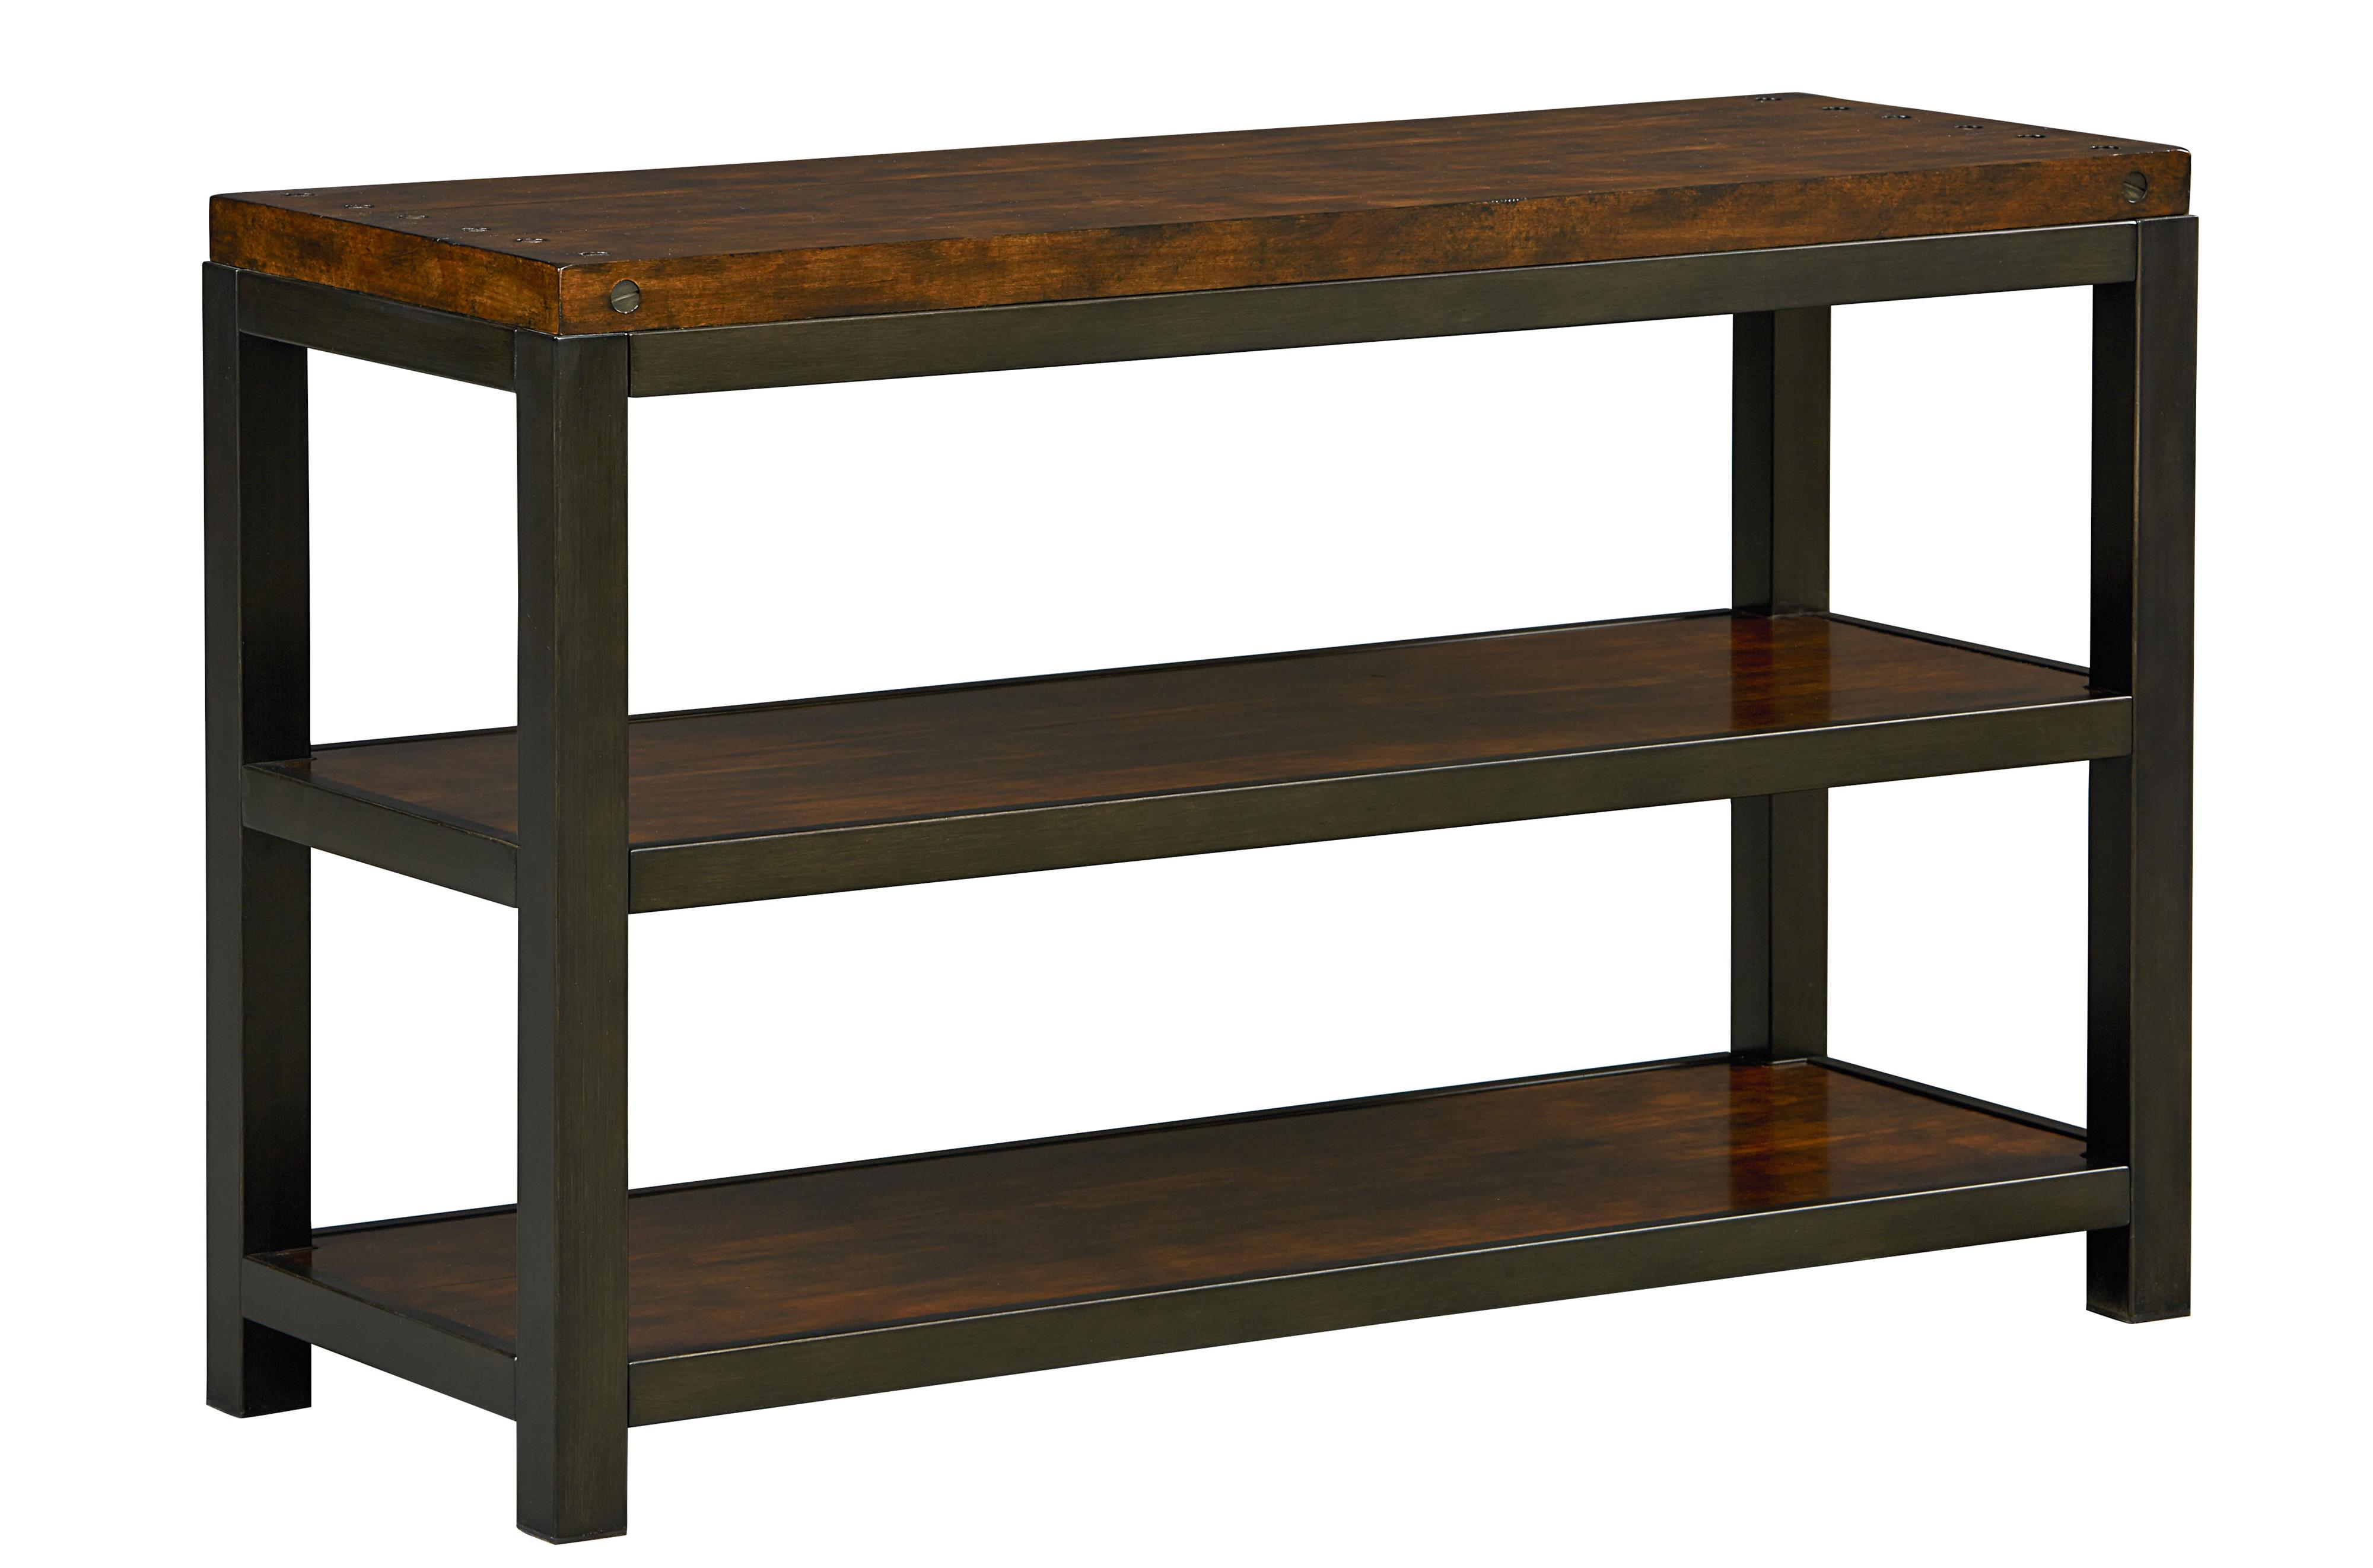 Standard Furniture Mackenzie Console Table            - Item Number: 29566